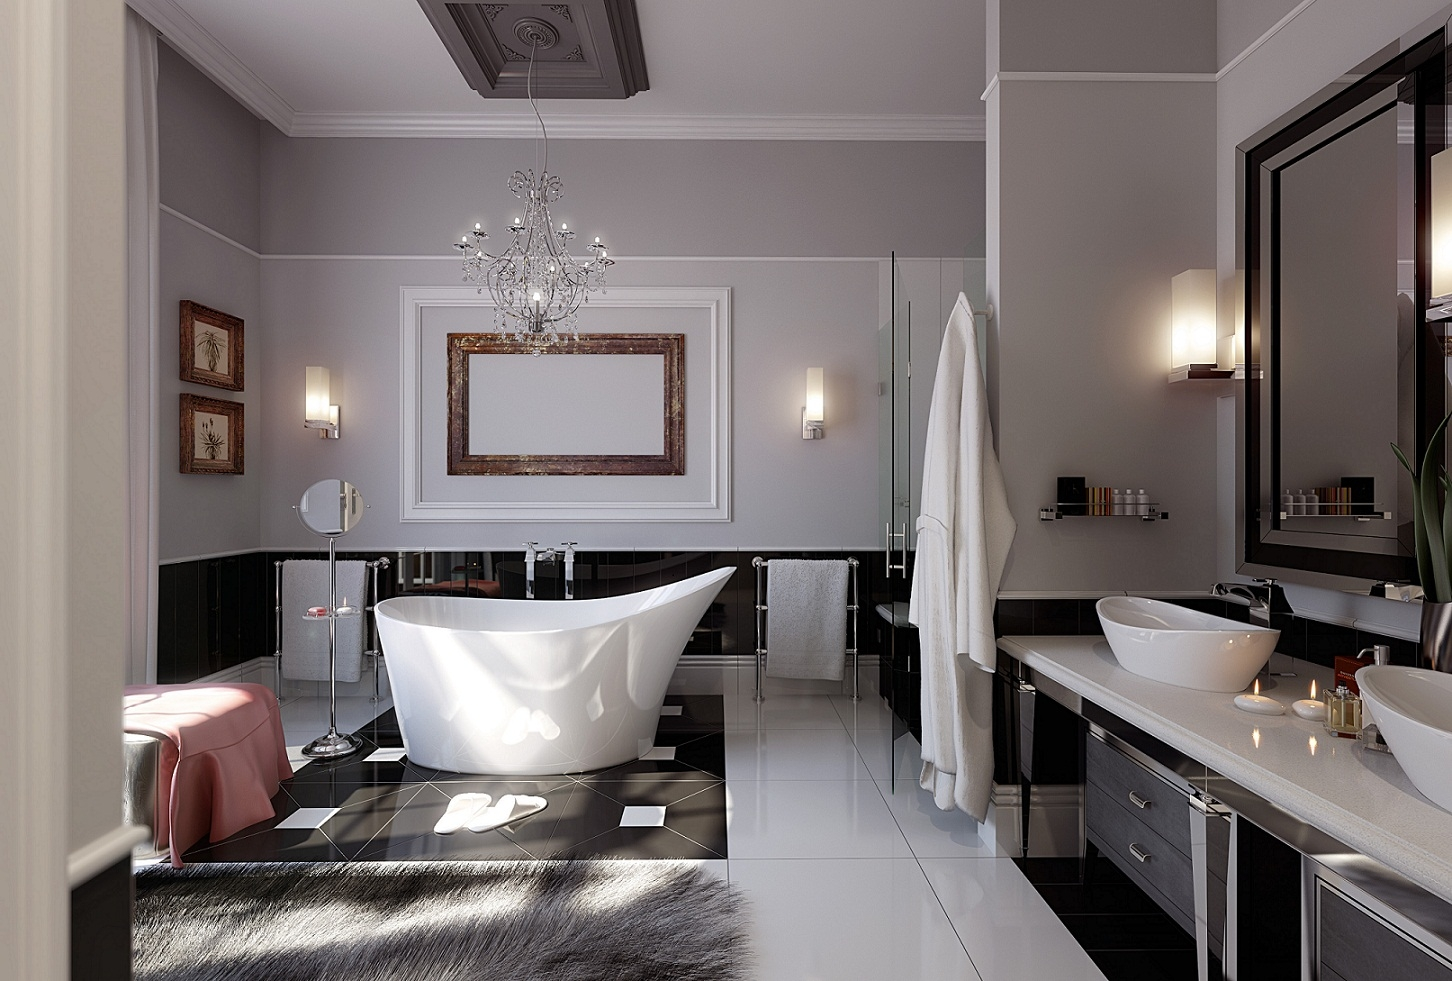 Bathroom Chandelier Modern Creative Bathroom Decoration For Modern Bathroom Chandeliers (View 3 of 15)